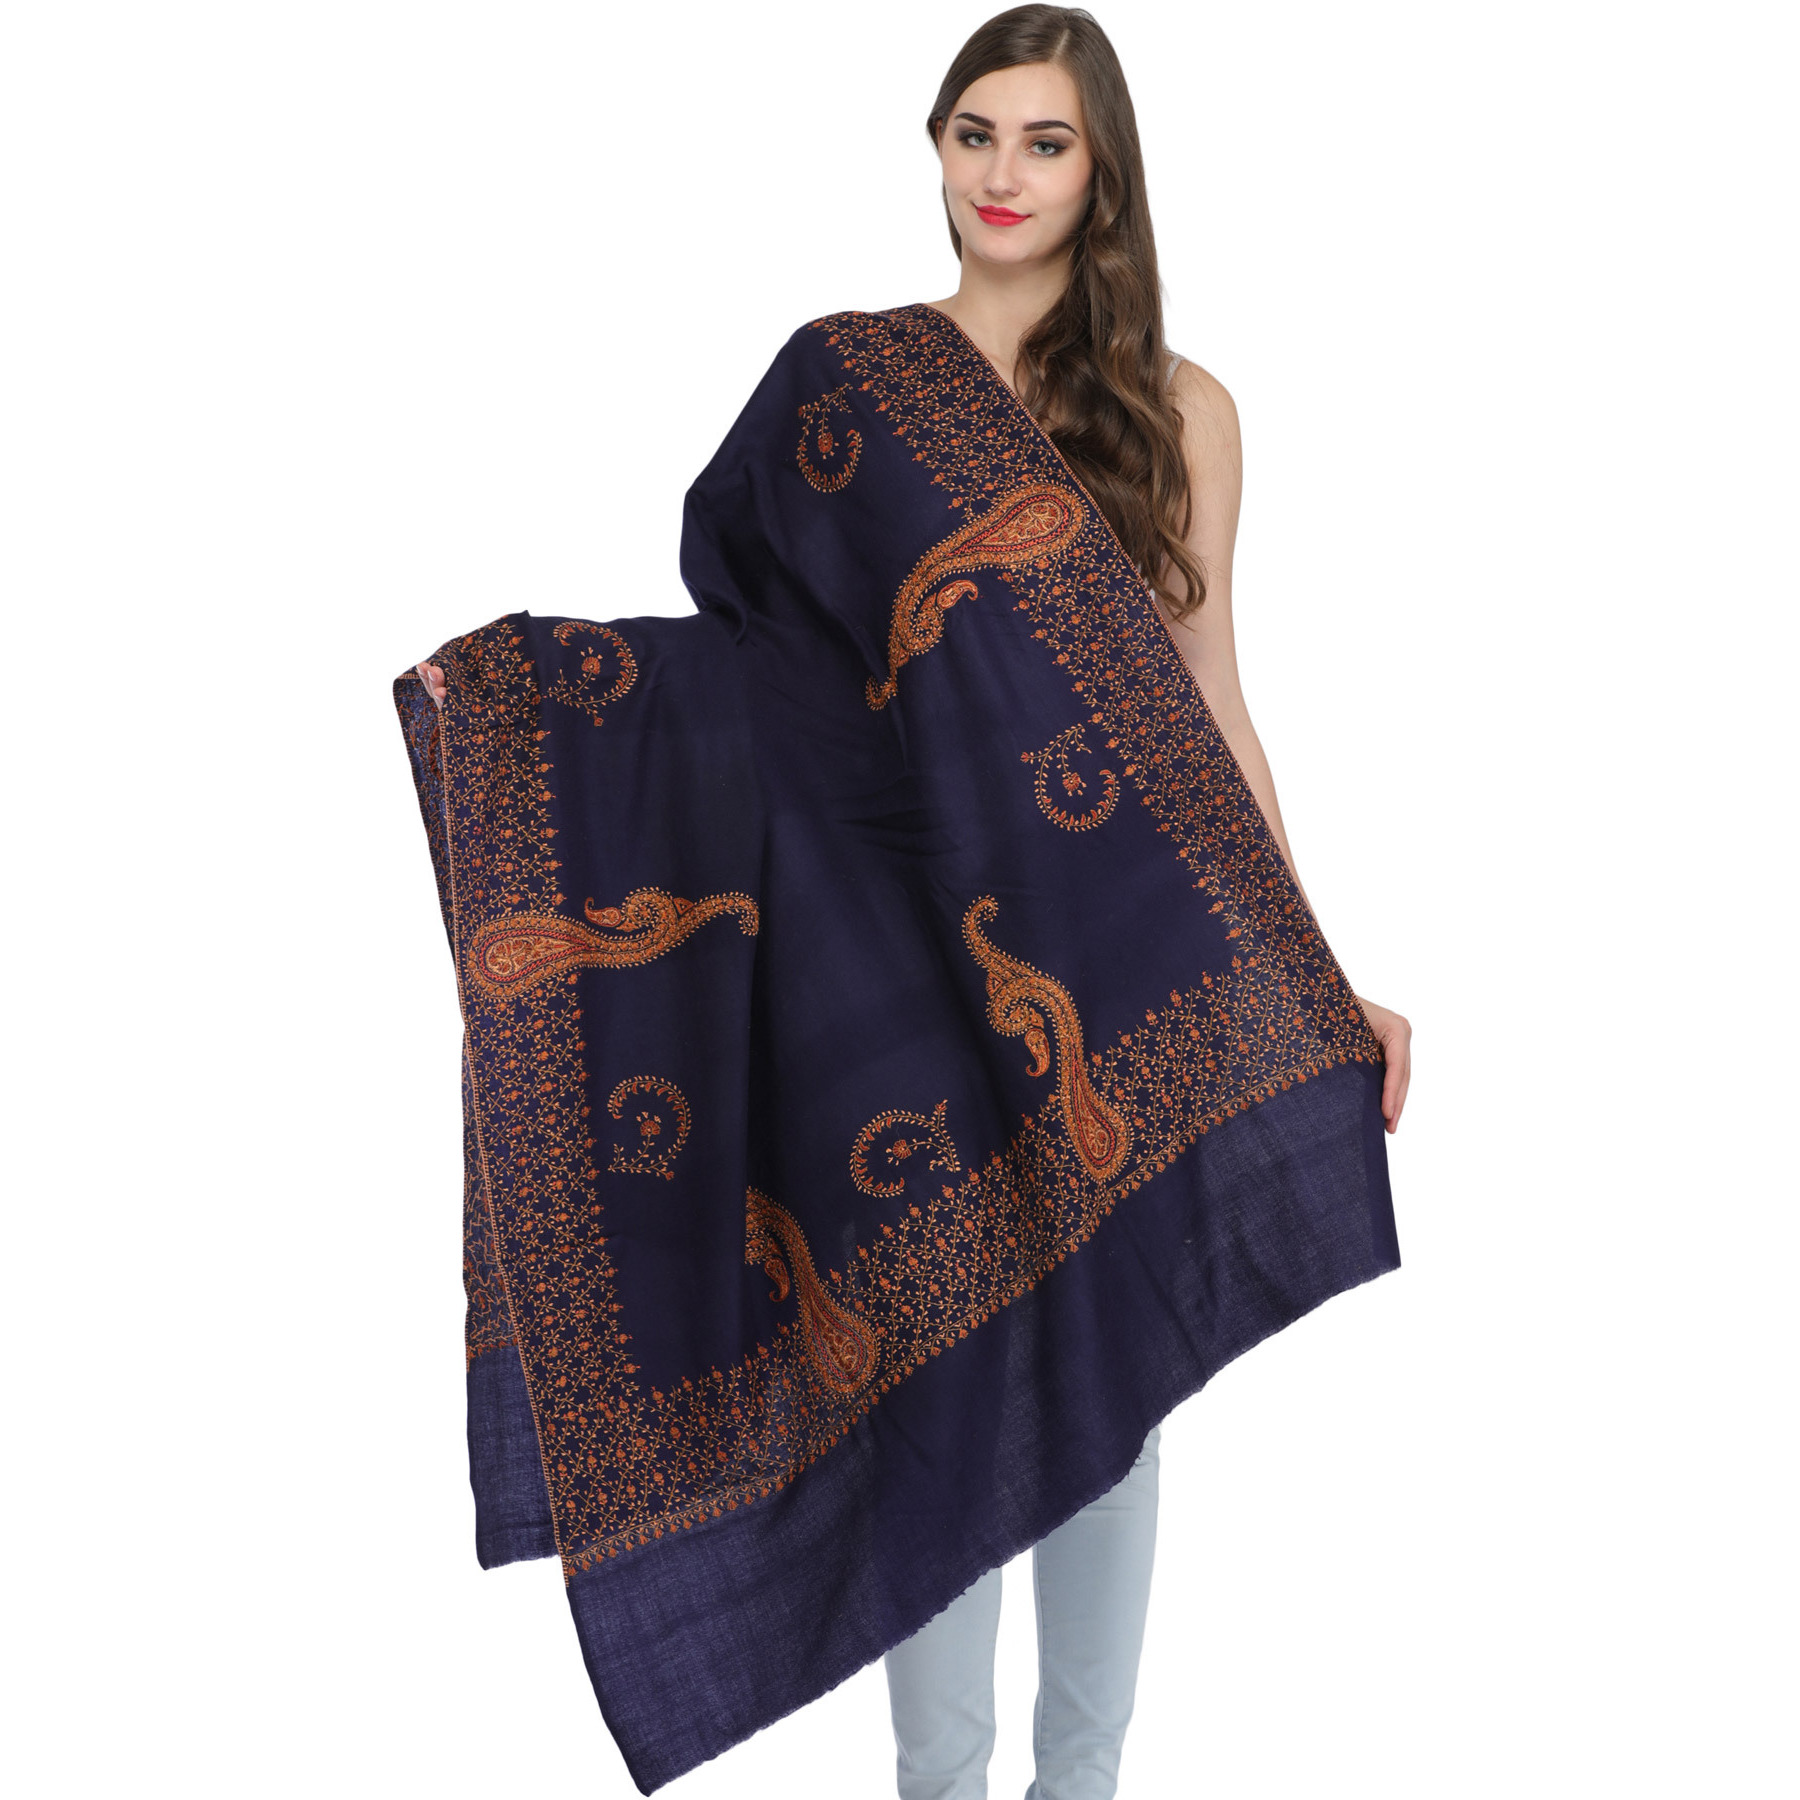 Patriot-Blue Tusha Shawl from Kashmir with Sozni Hand-Embroidery